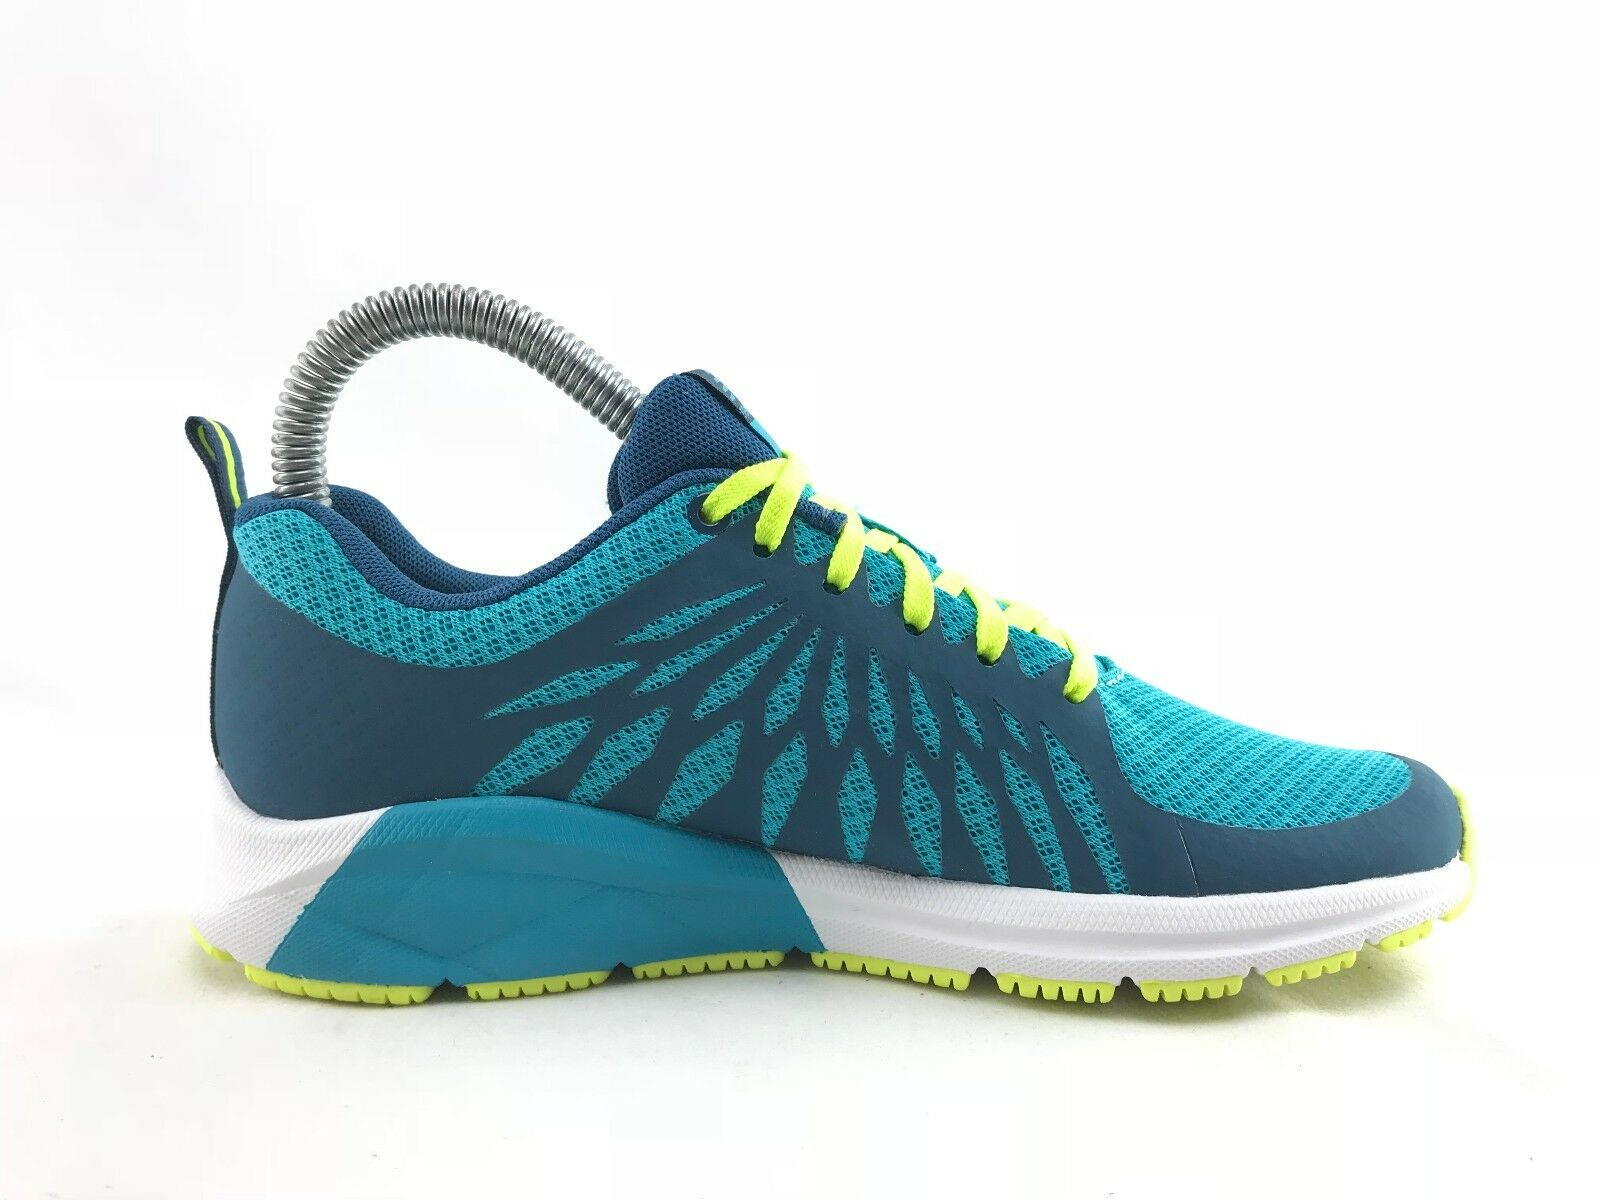 New Balance 1065 Training Women's Blue Athletic Running Training 1065 Shoes US 5.5 2A B908 7002a1